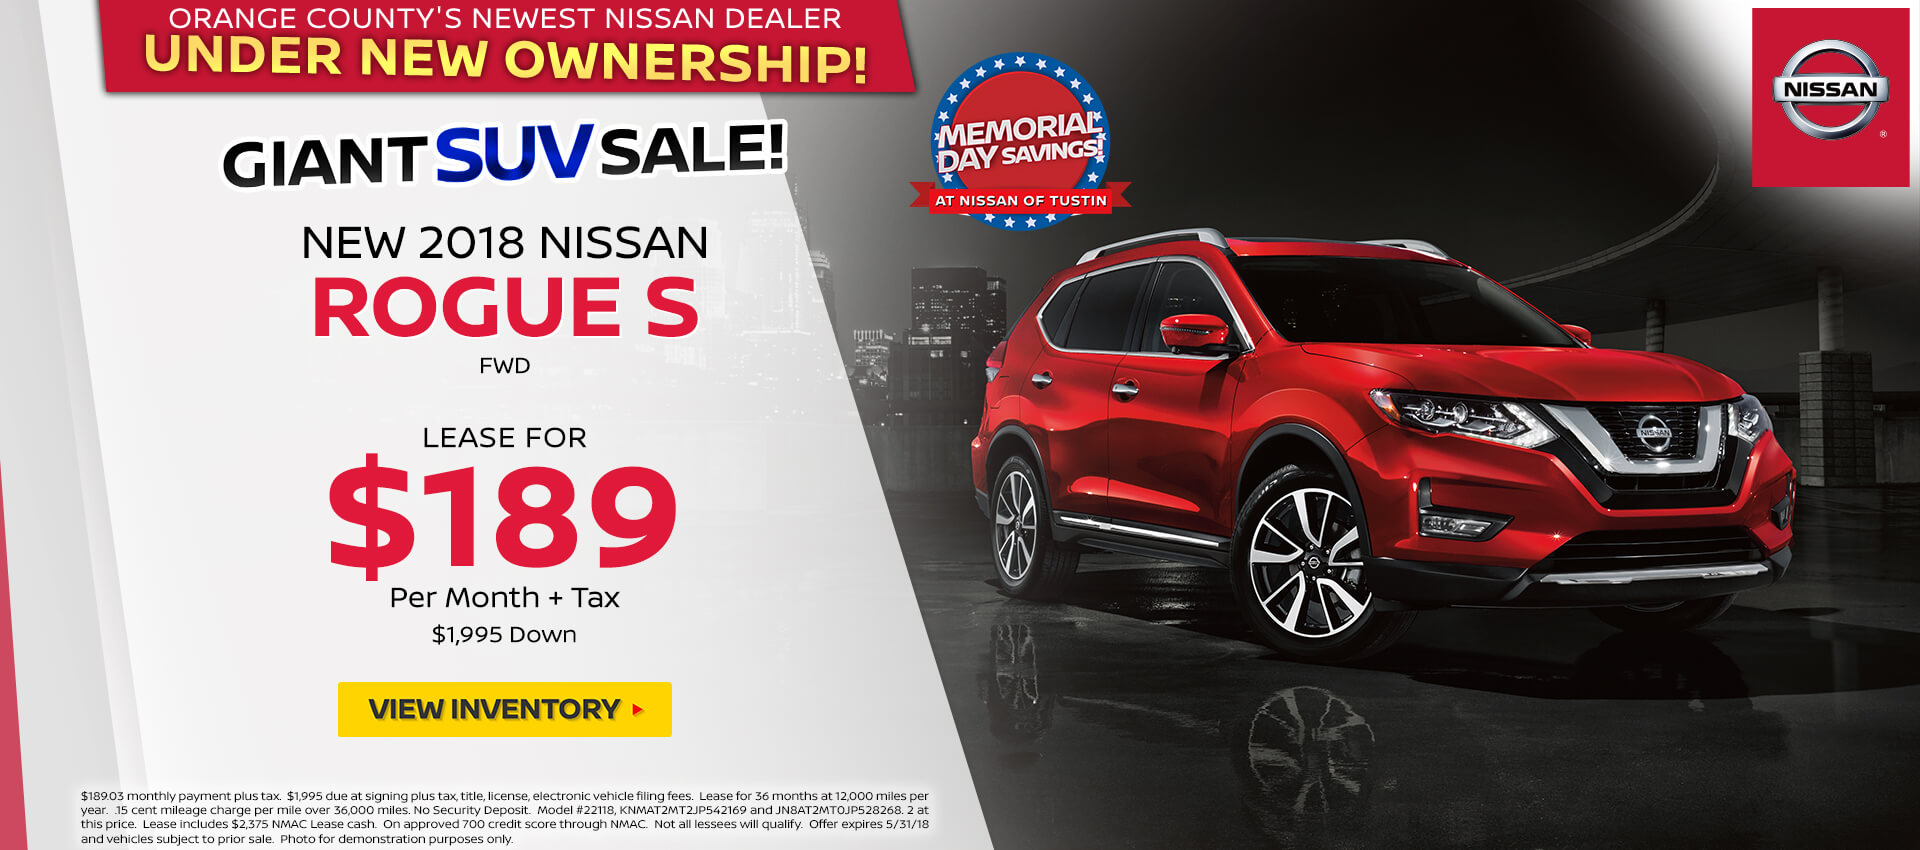 2018 Nissan Rogue $189 Lease